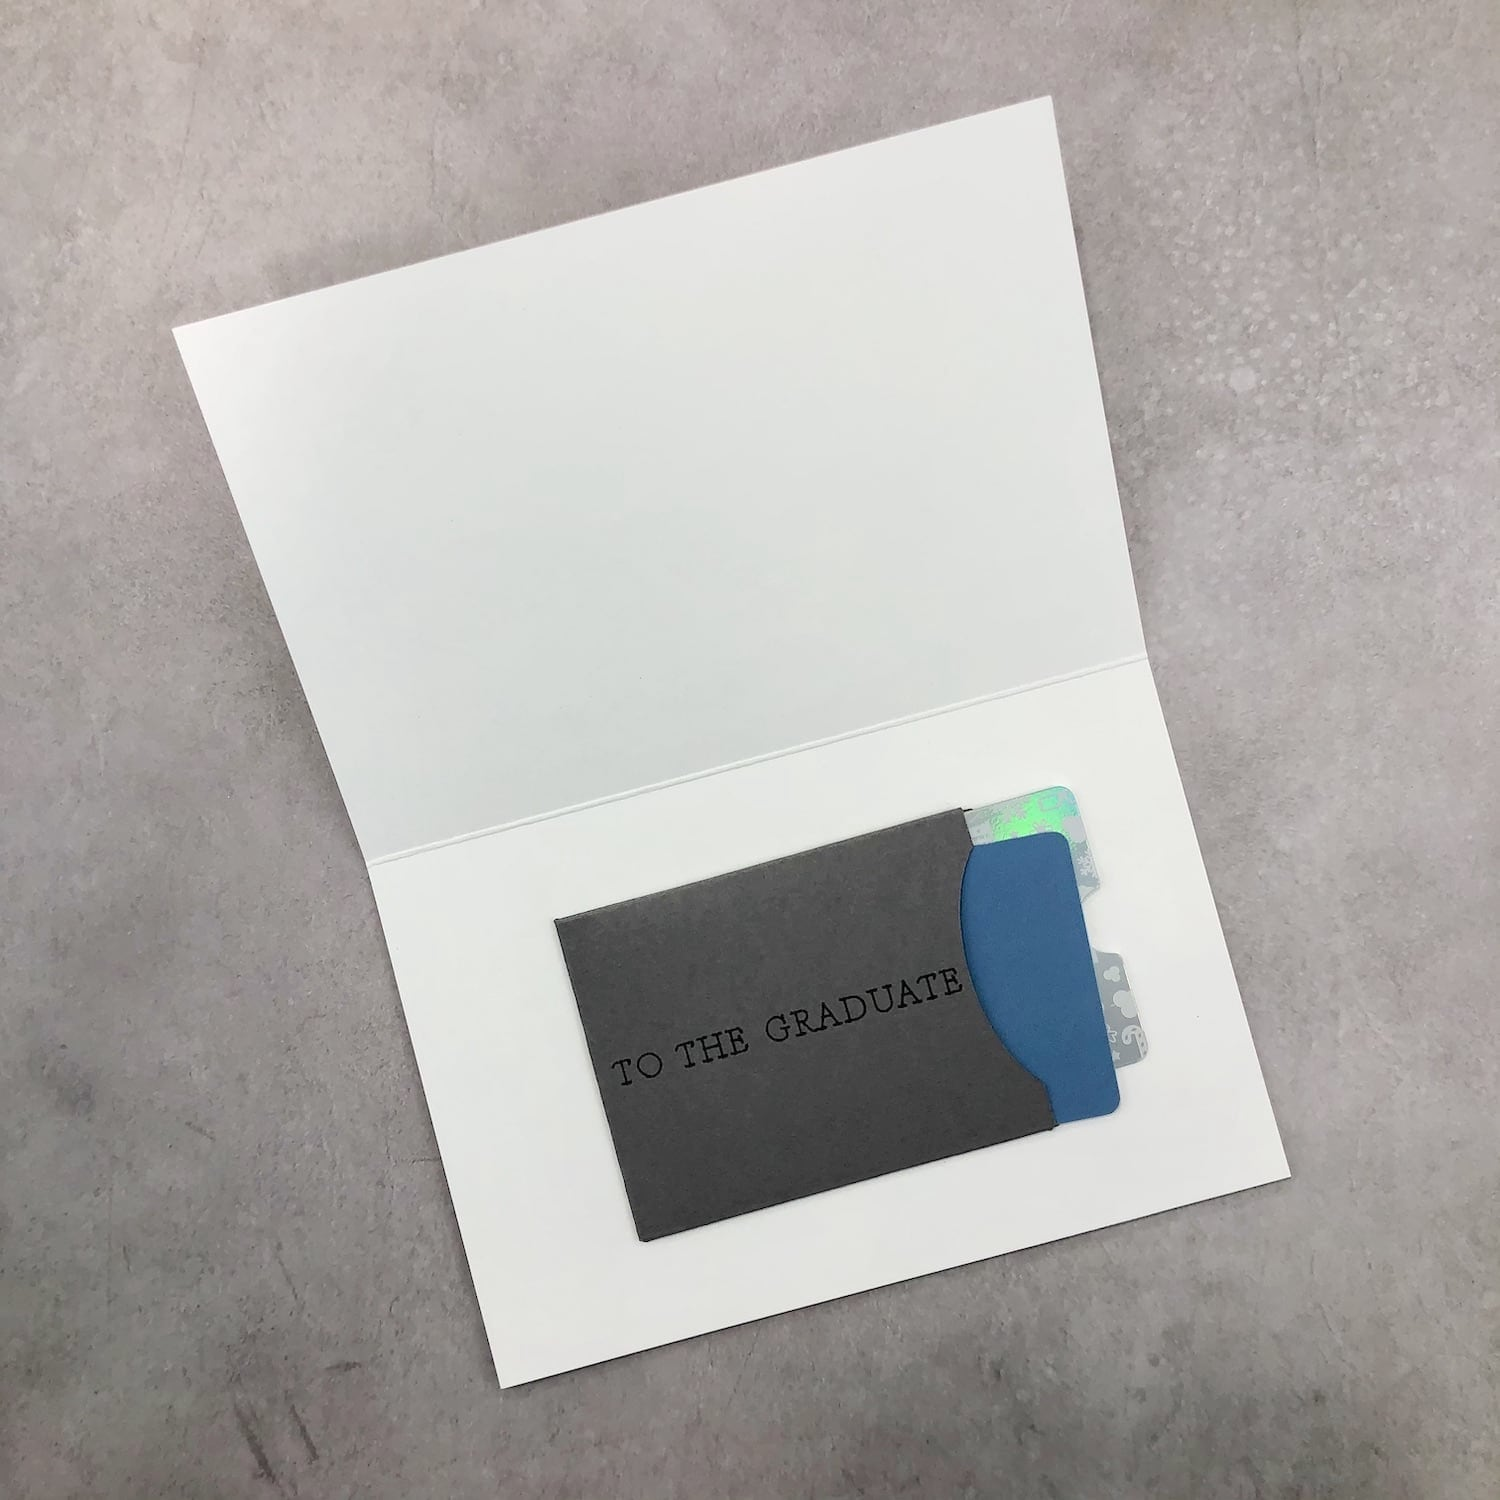 inside of card with gift cards in holder